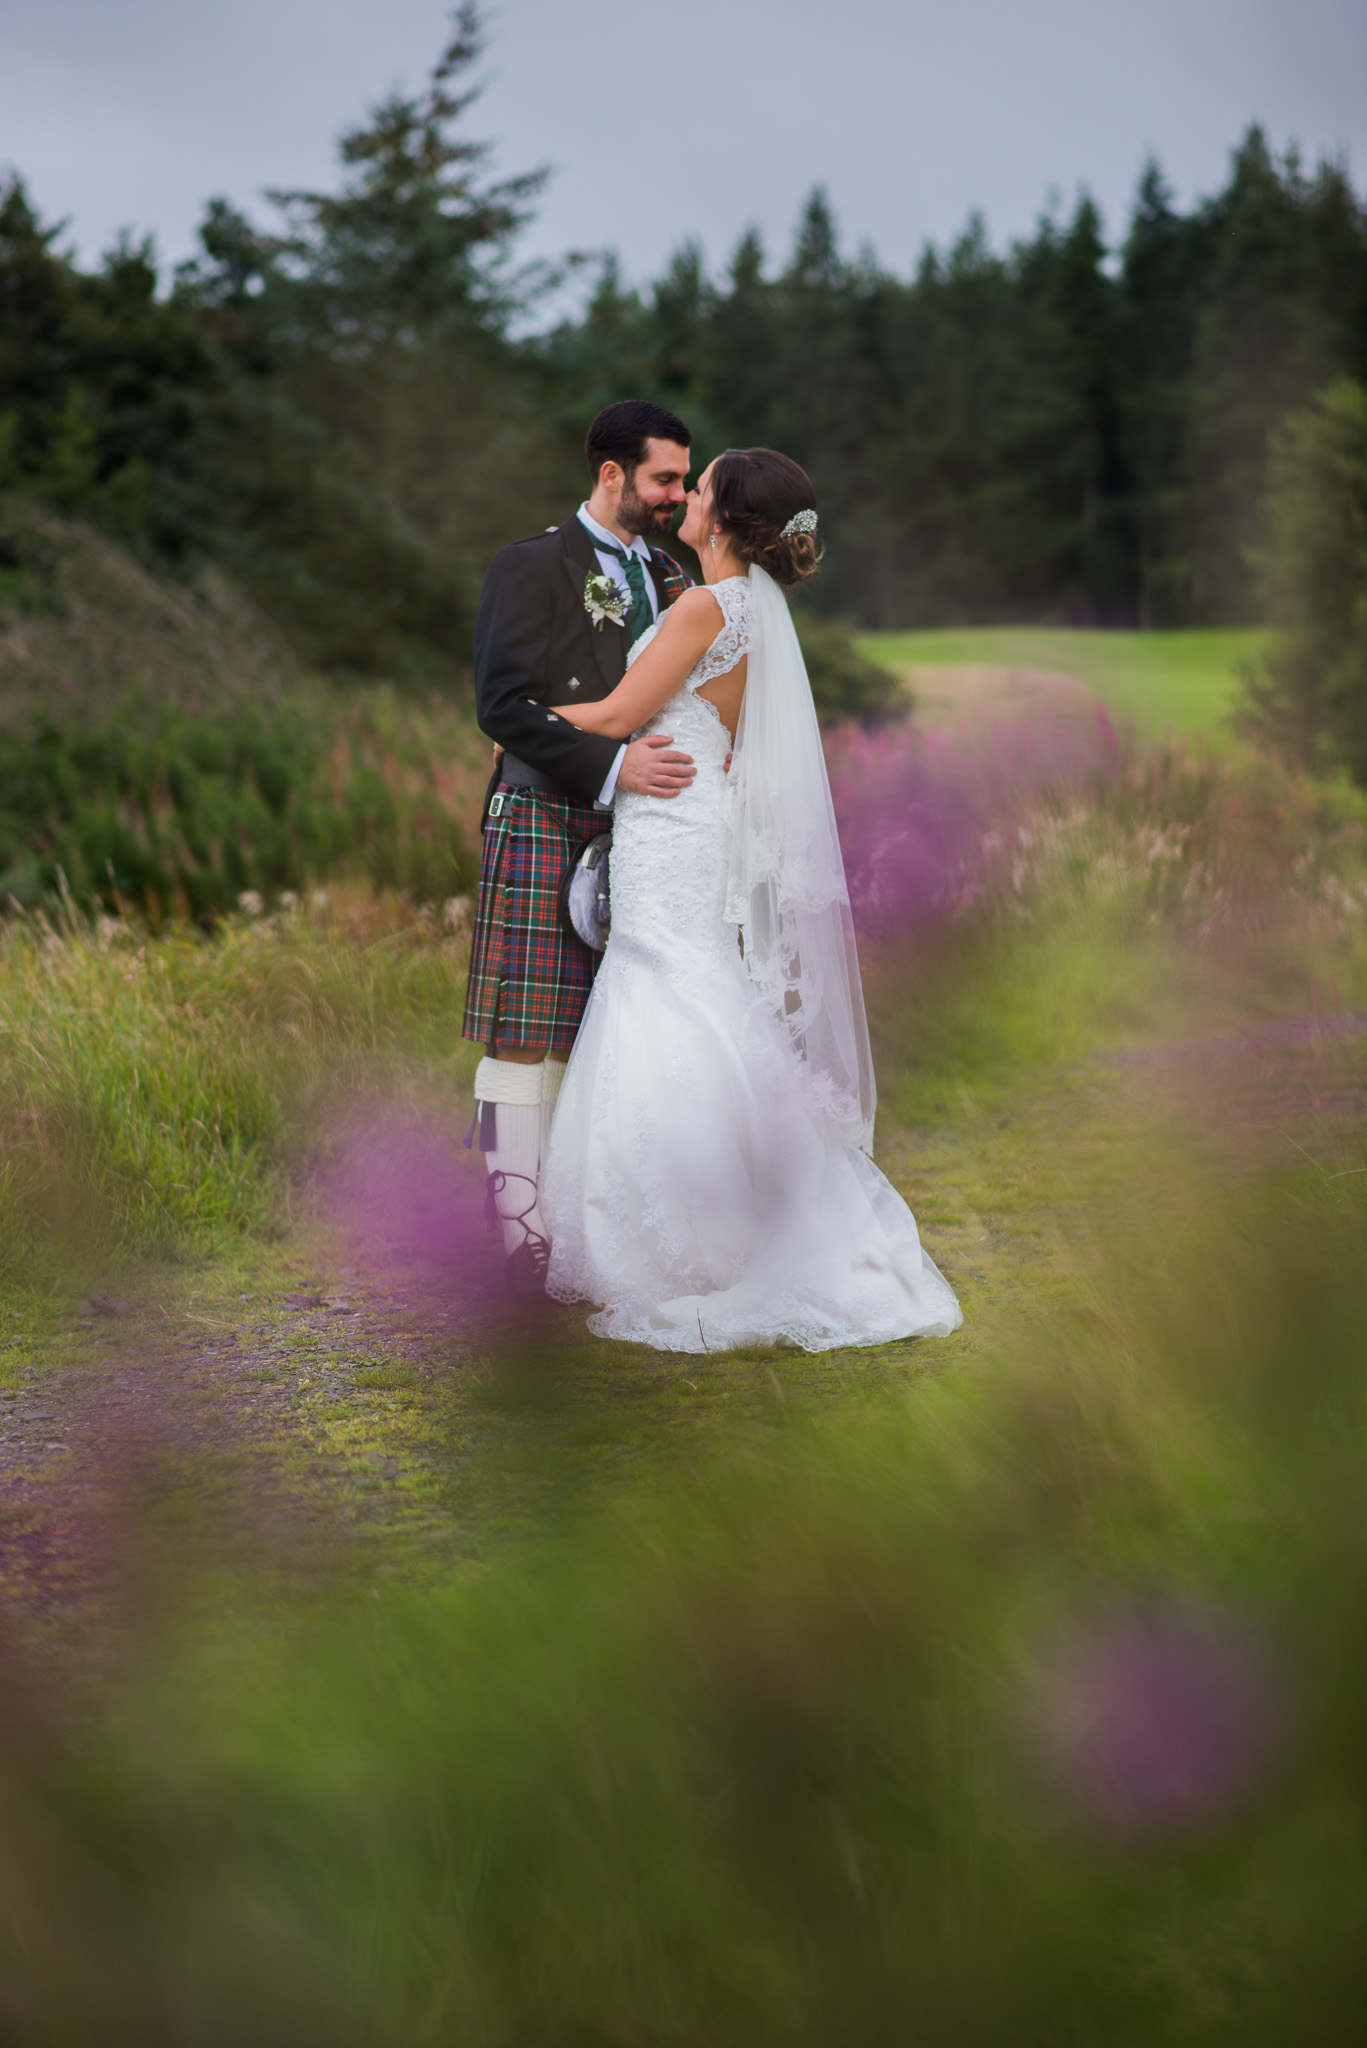 Wedding couple at Gleddoch House golf course